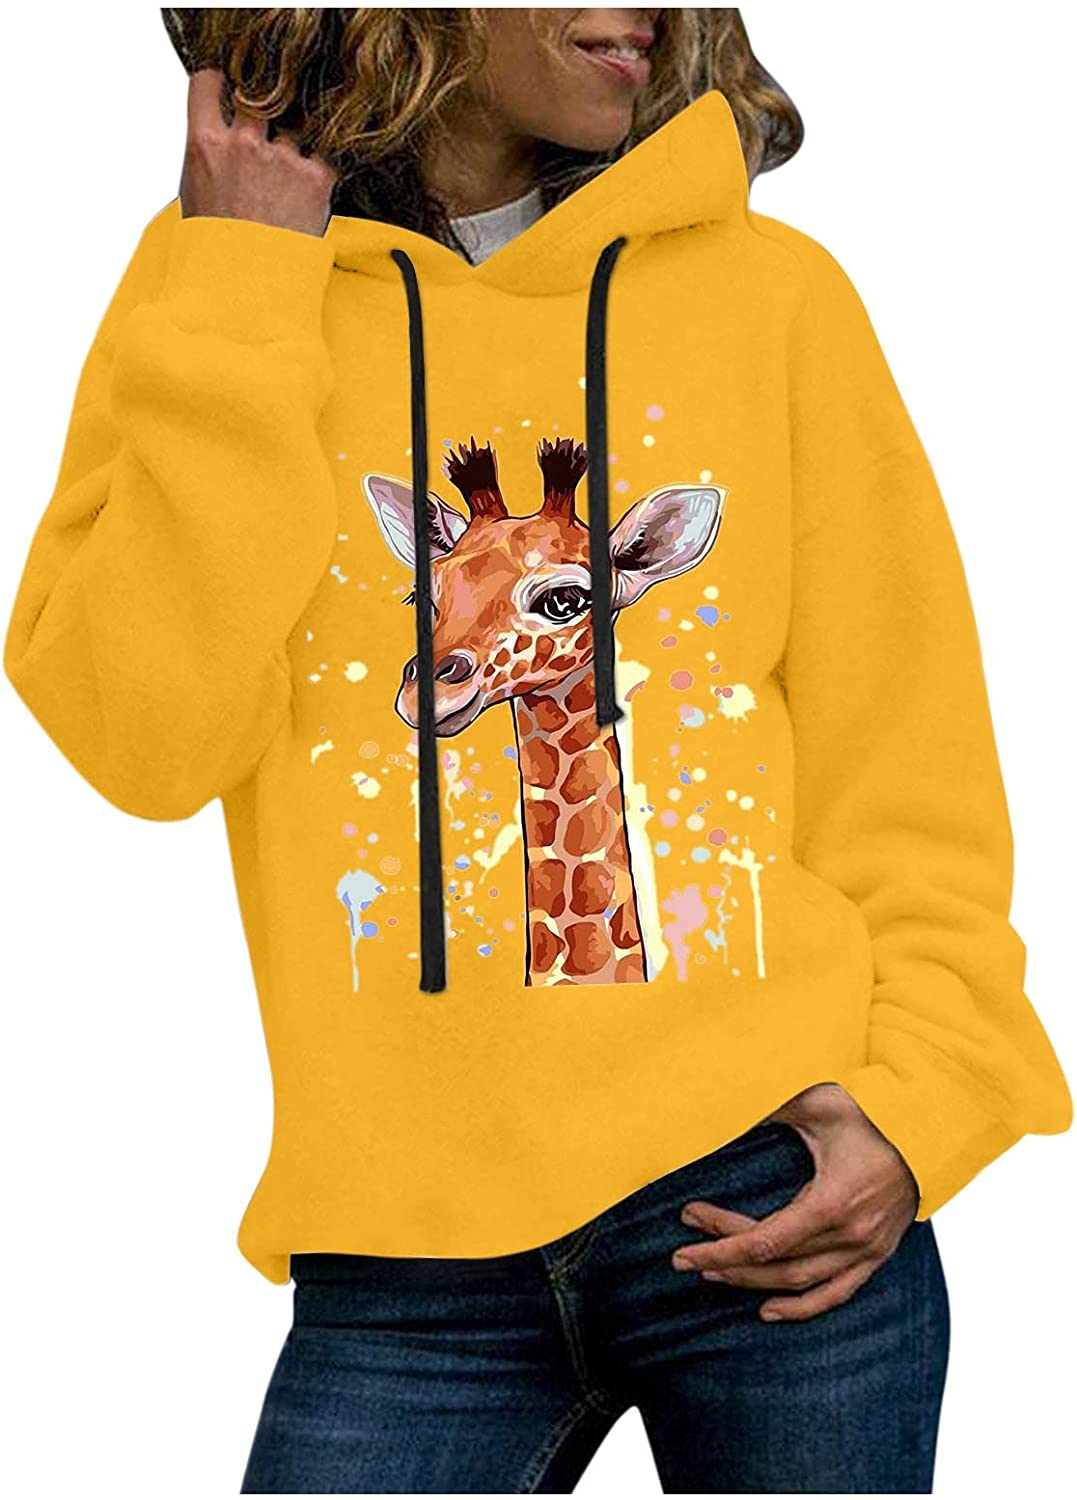 Hooded Pullover For Girls Popular products Casual 2021new shipping free shipping fashion Pri Giraffe Sleeve Fall